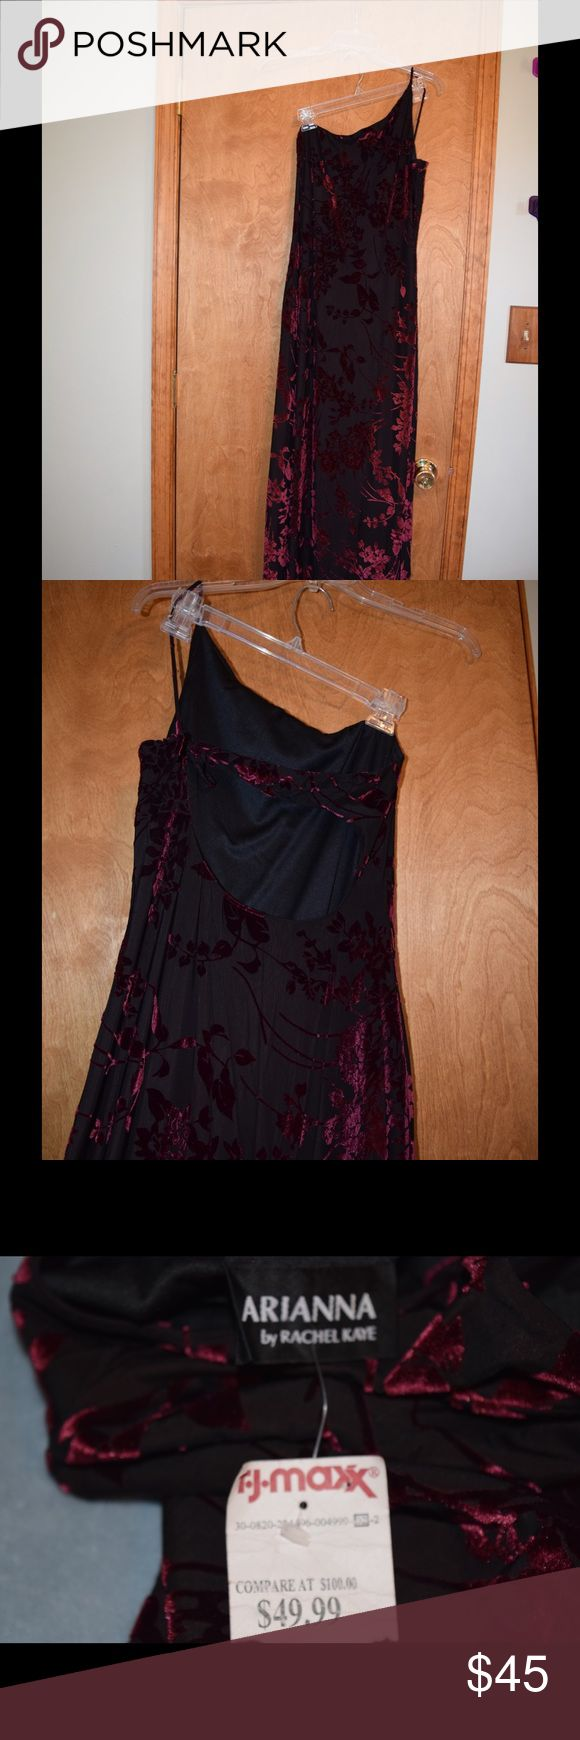 Arianna by Rachel Kaye formal dress Arianna by Rachel Kaye long black formal with rose colored floral design. Brand new with tags, never worn. Bought at TJ Max form$49.99 compared to $100 at department stores. size 10/12. Arianna by Rachel Kaye Dresses One Shoulder